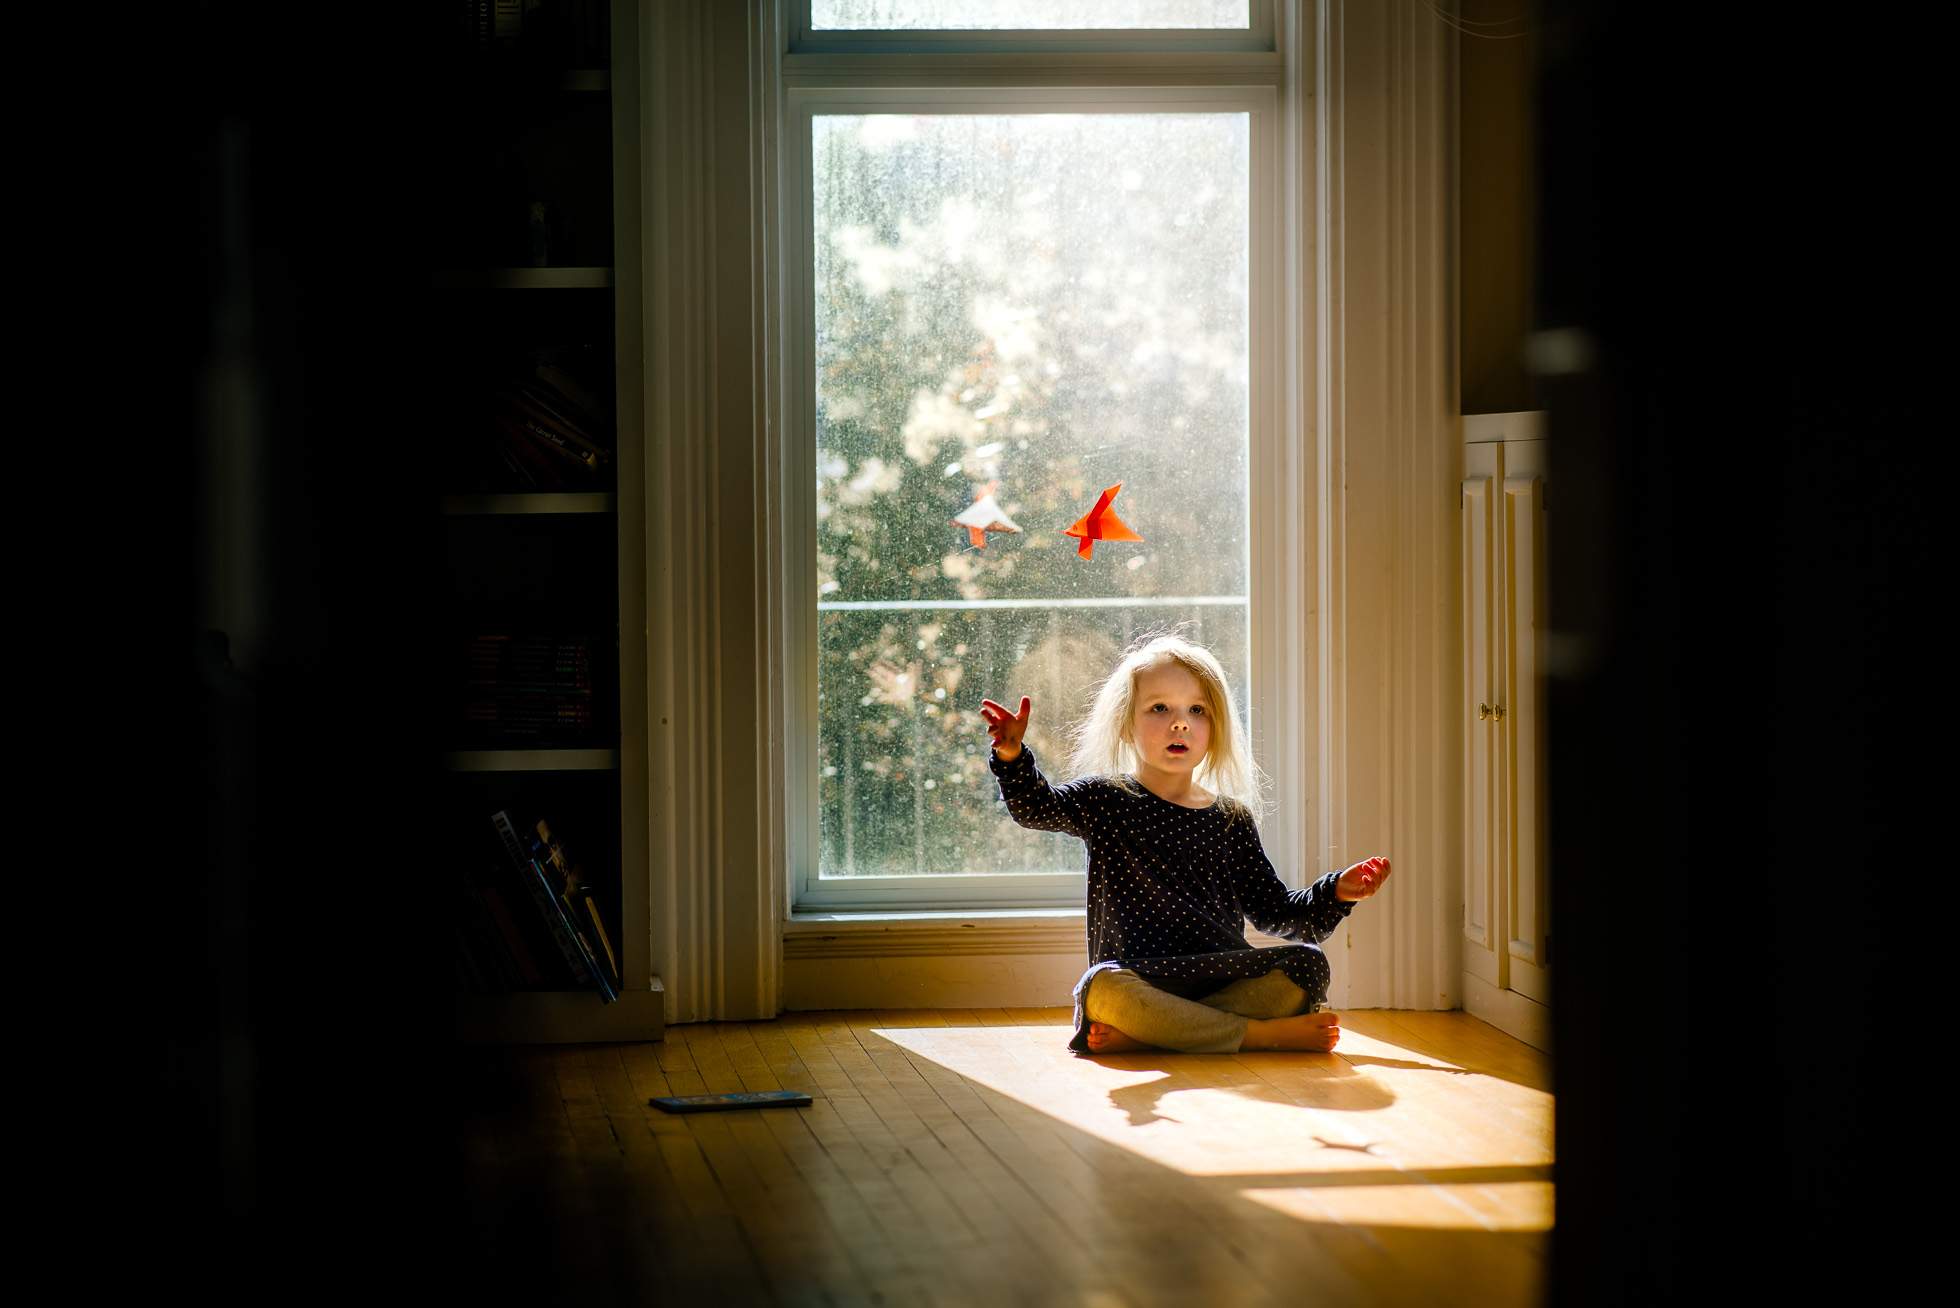 little-girl-playing-with-orange-origami-swan-near-tall-window-with-beautiful-natural-light-backlighting-by-sarah-wilkerson